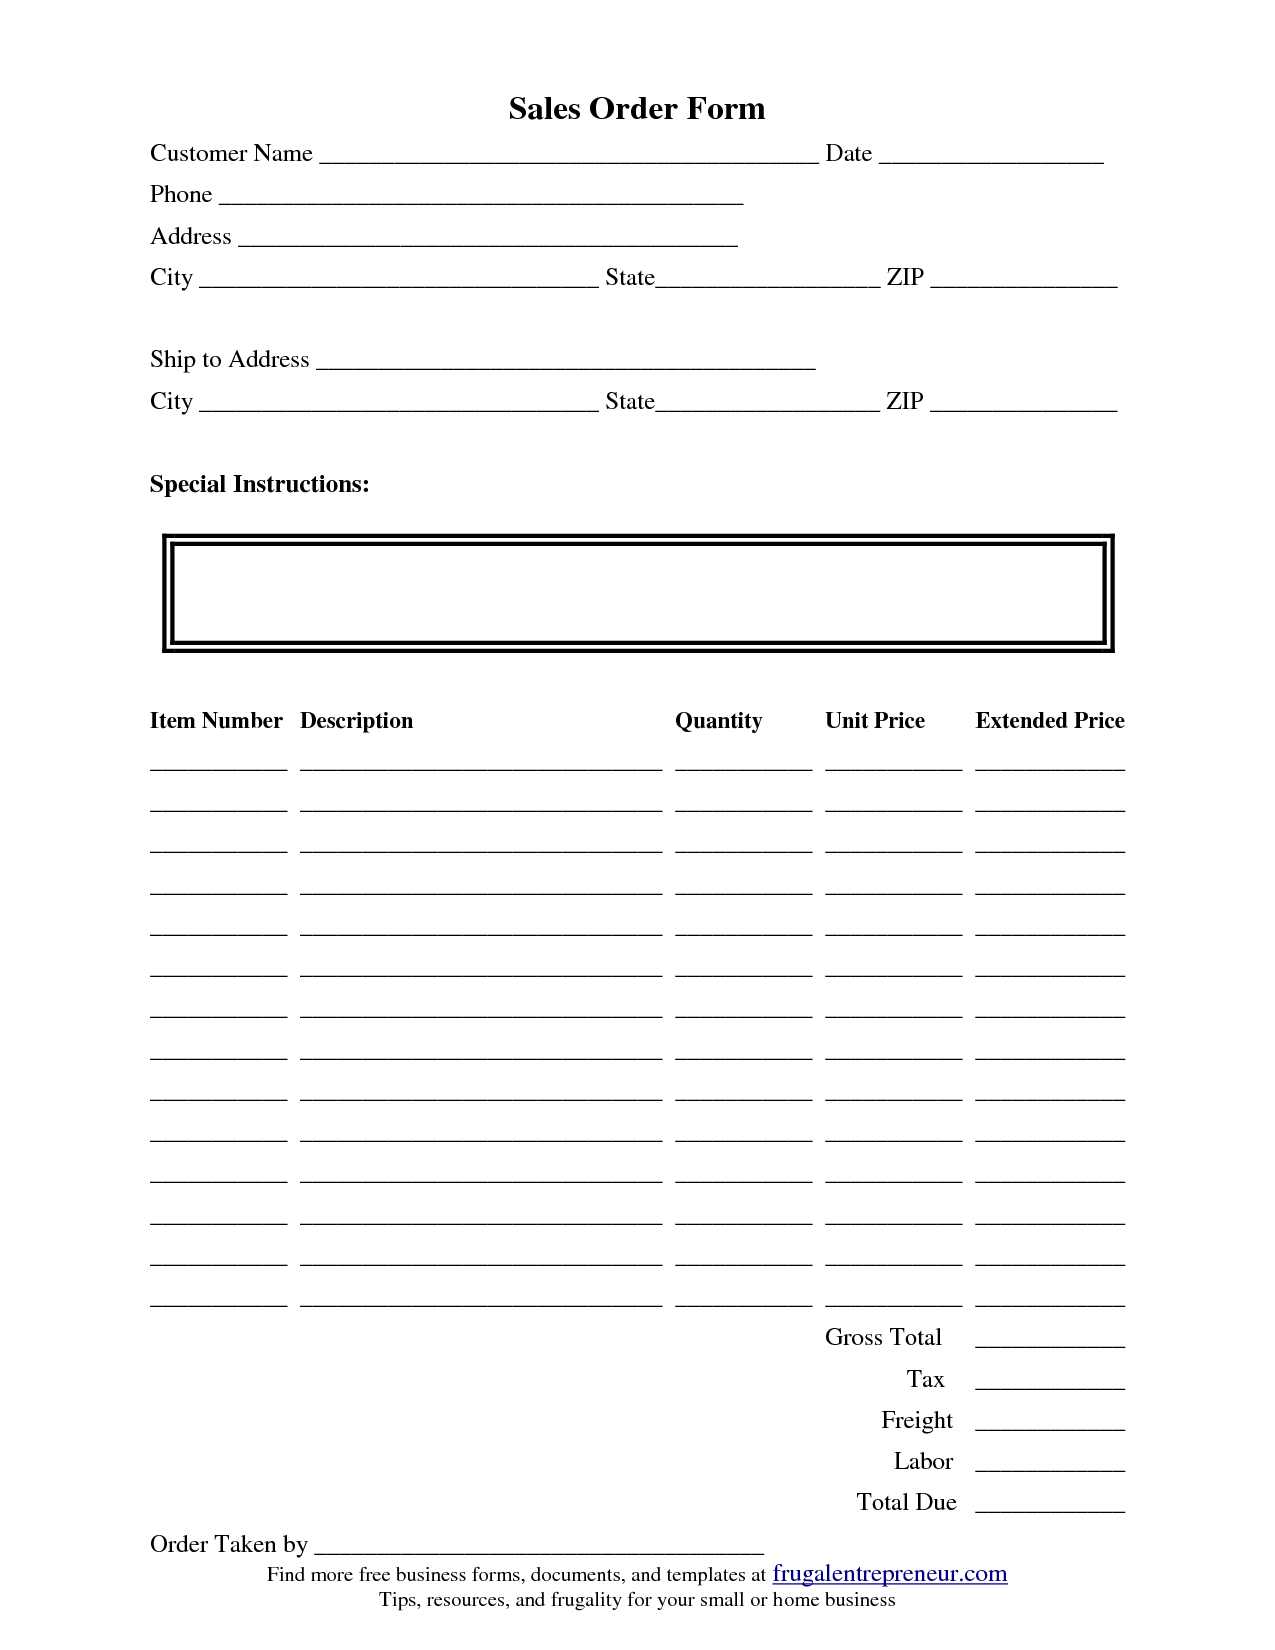 1000 images about Order form – Order Form Templates